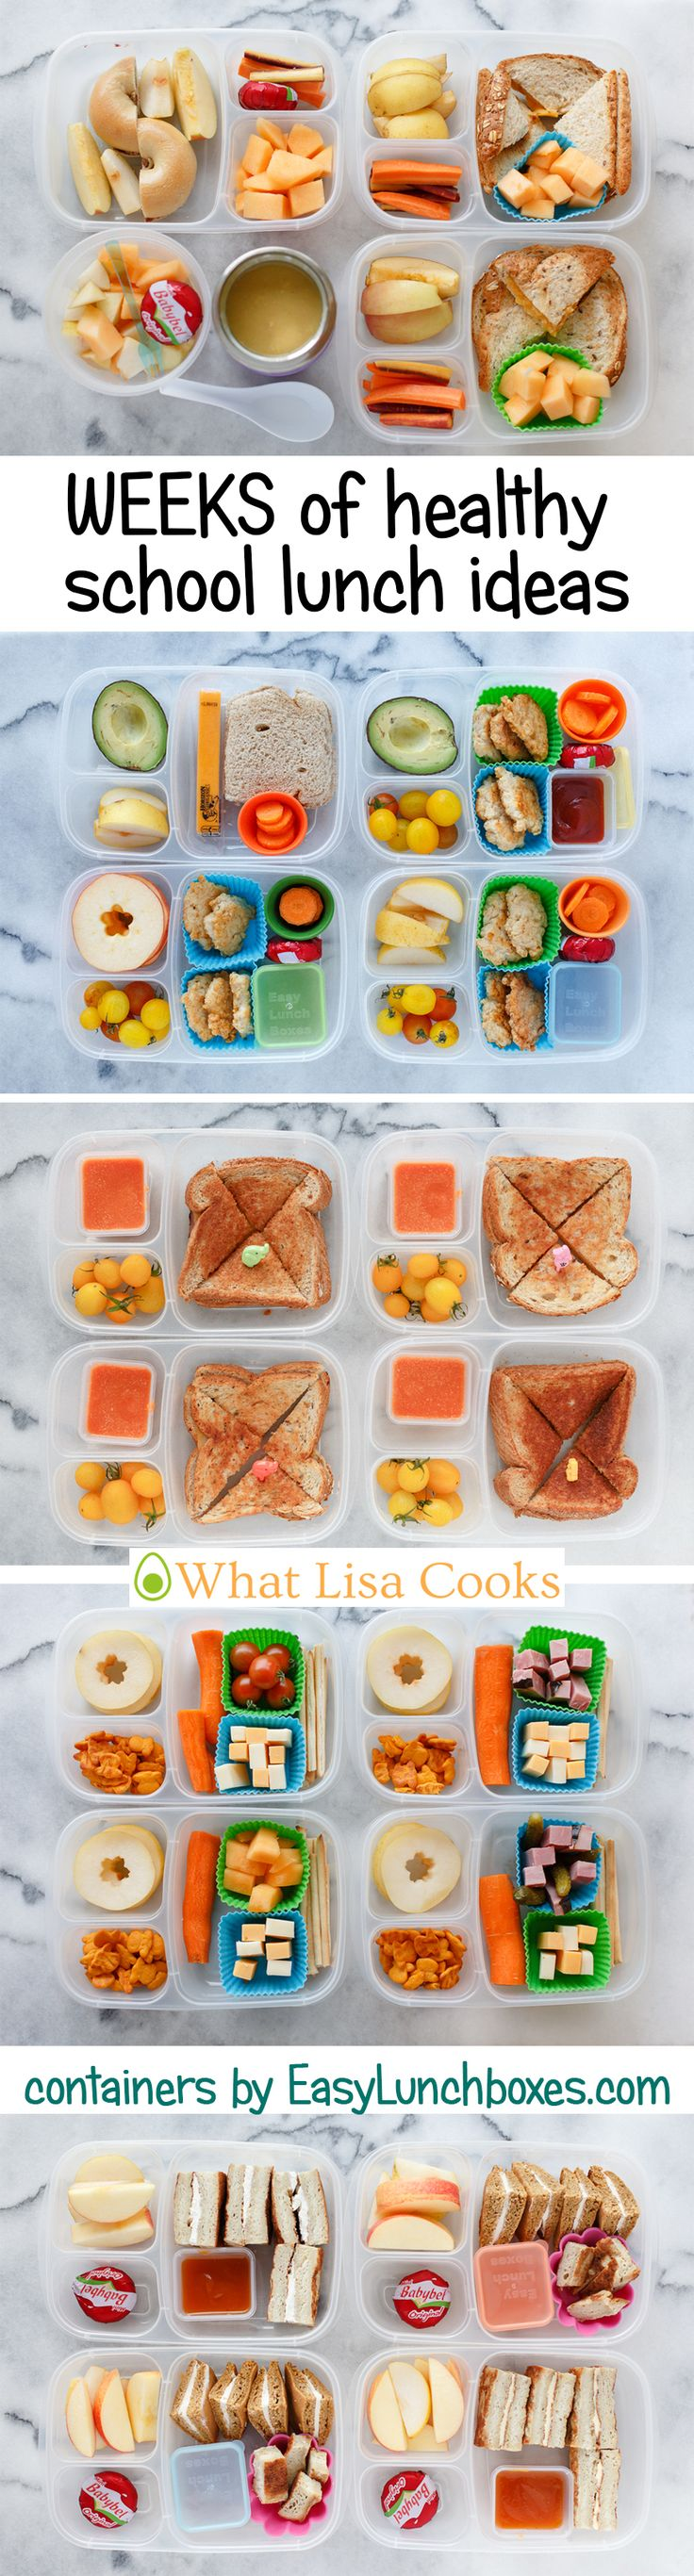 School lunch ideas. Week by week.